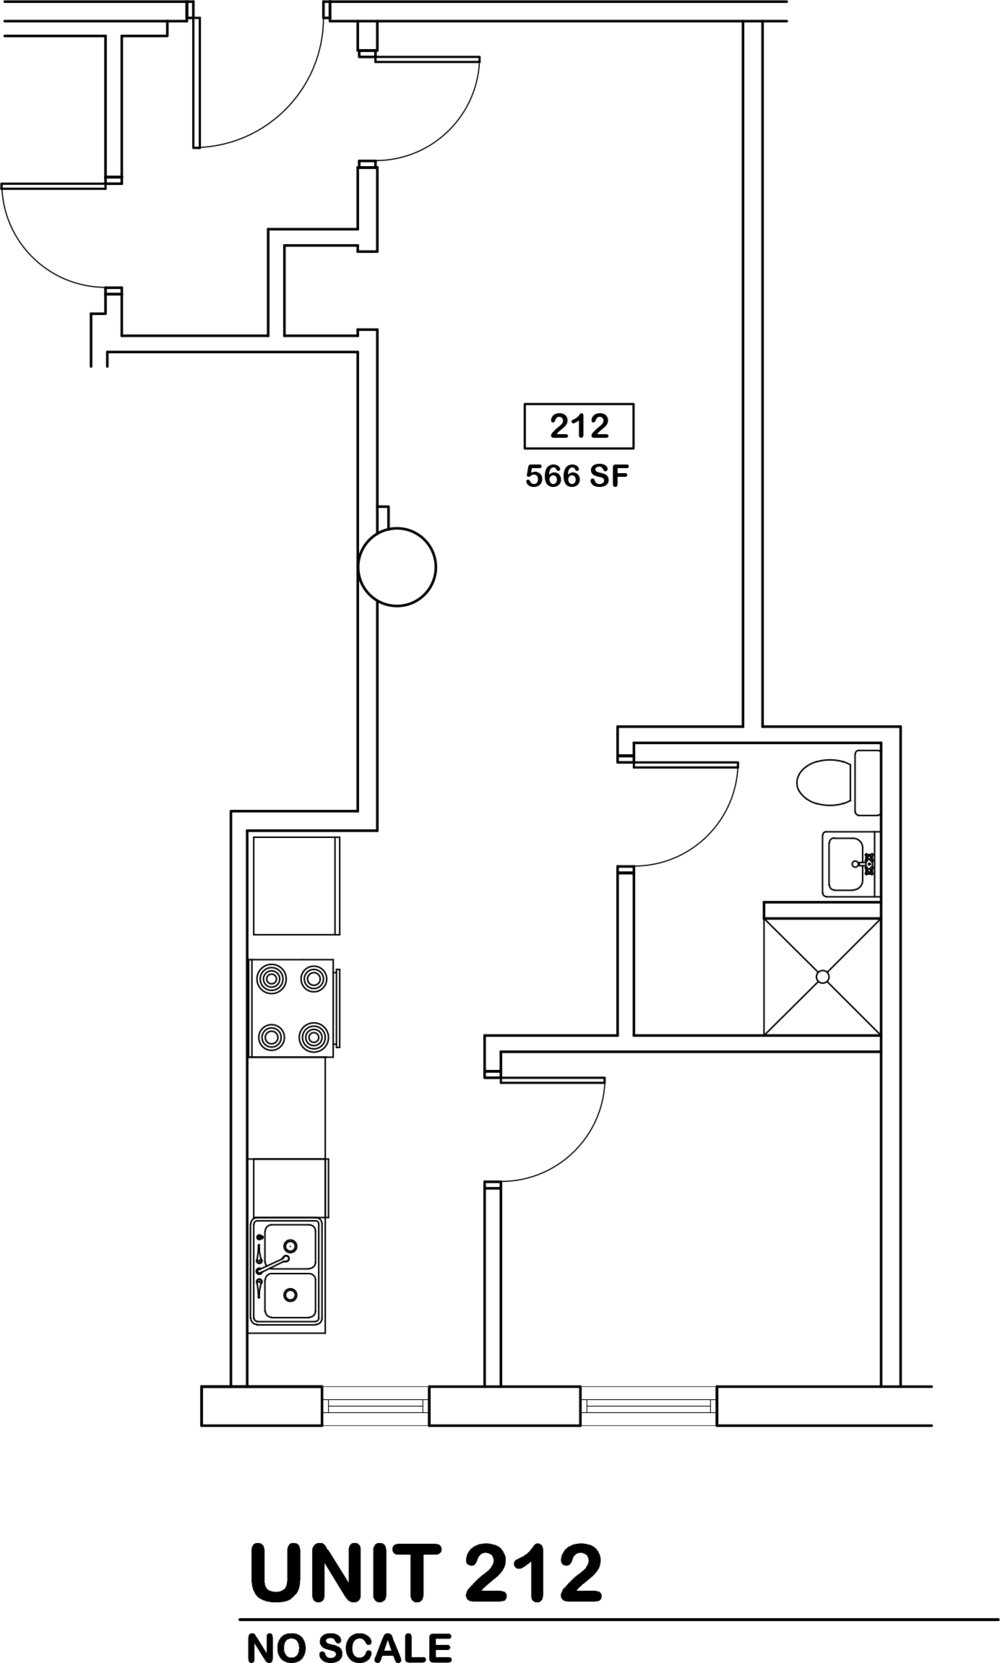 1 bed / 1 bath   $500 / 566 sq ft